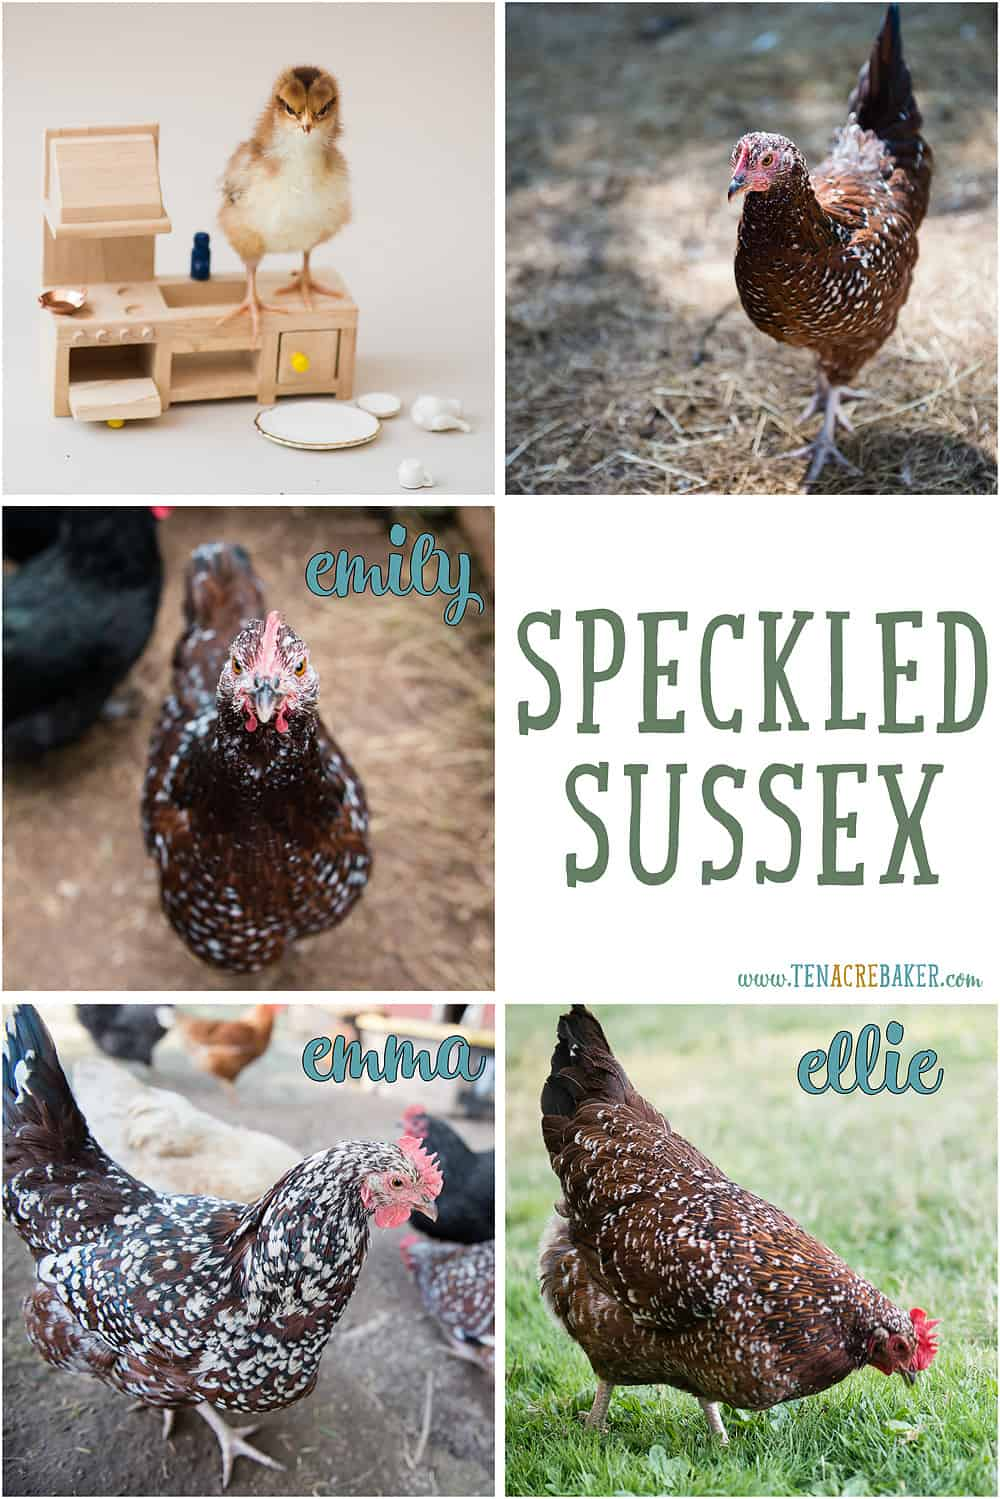 Speckled Sussex backyard chickens